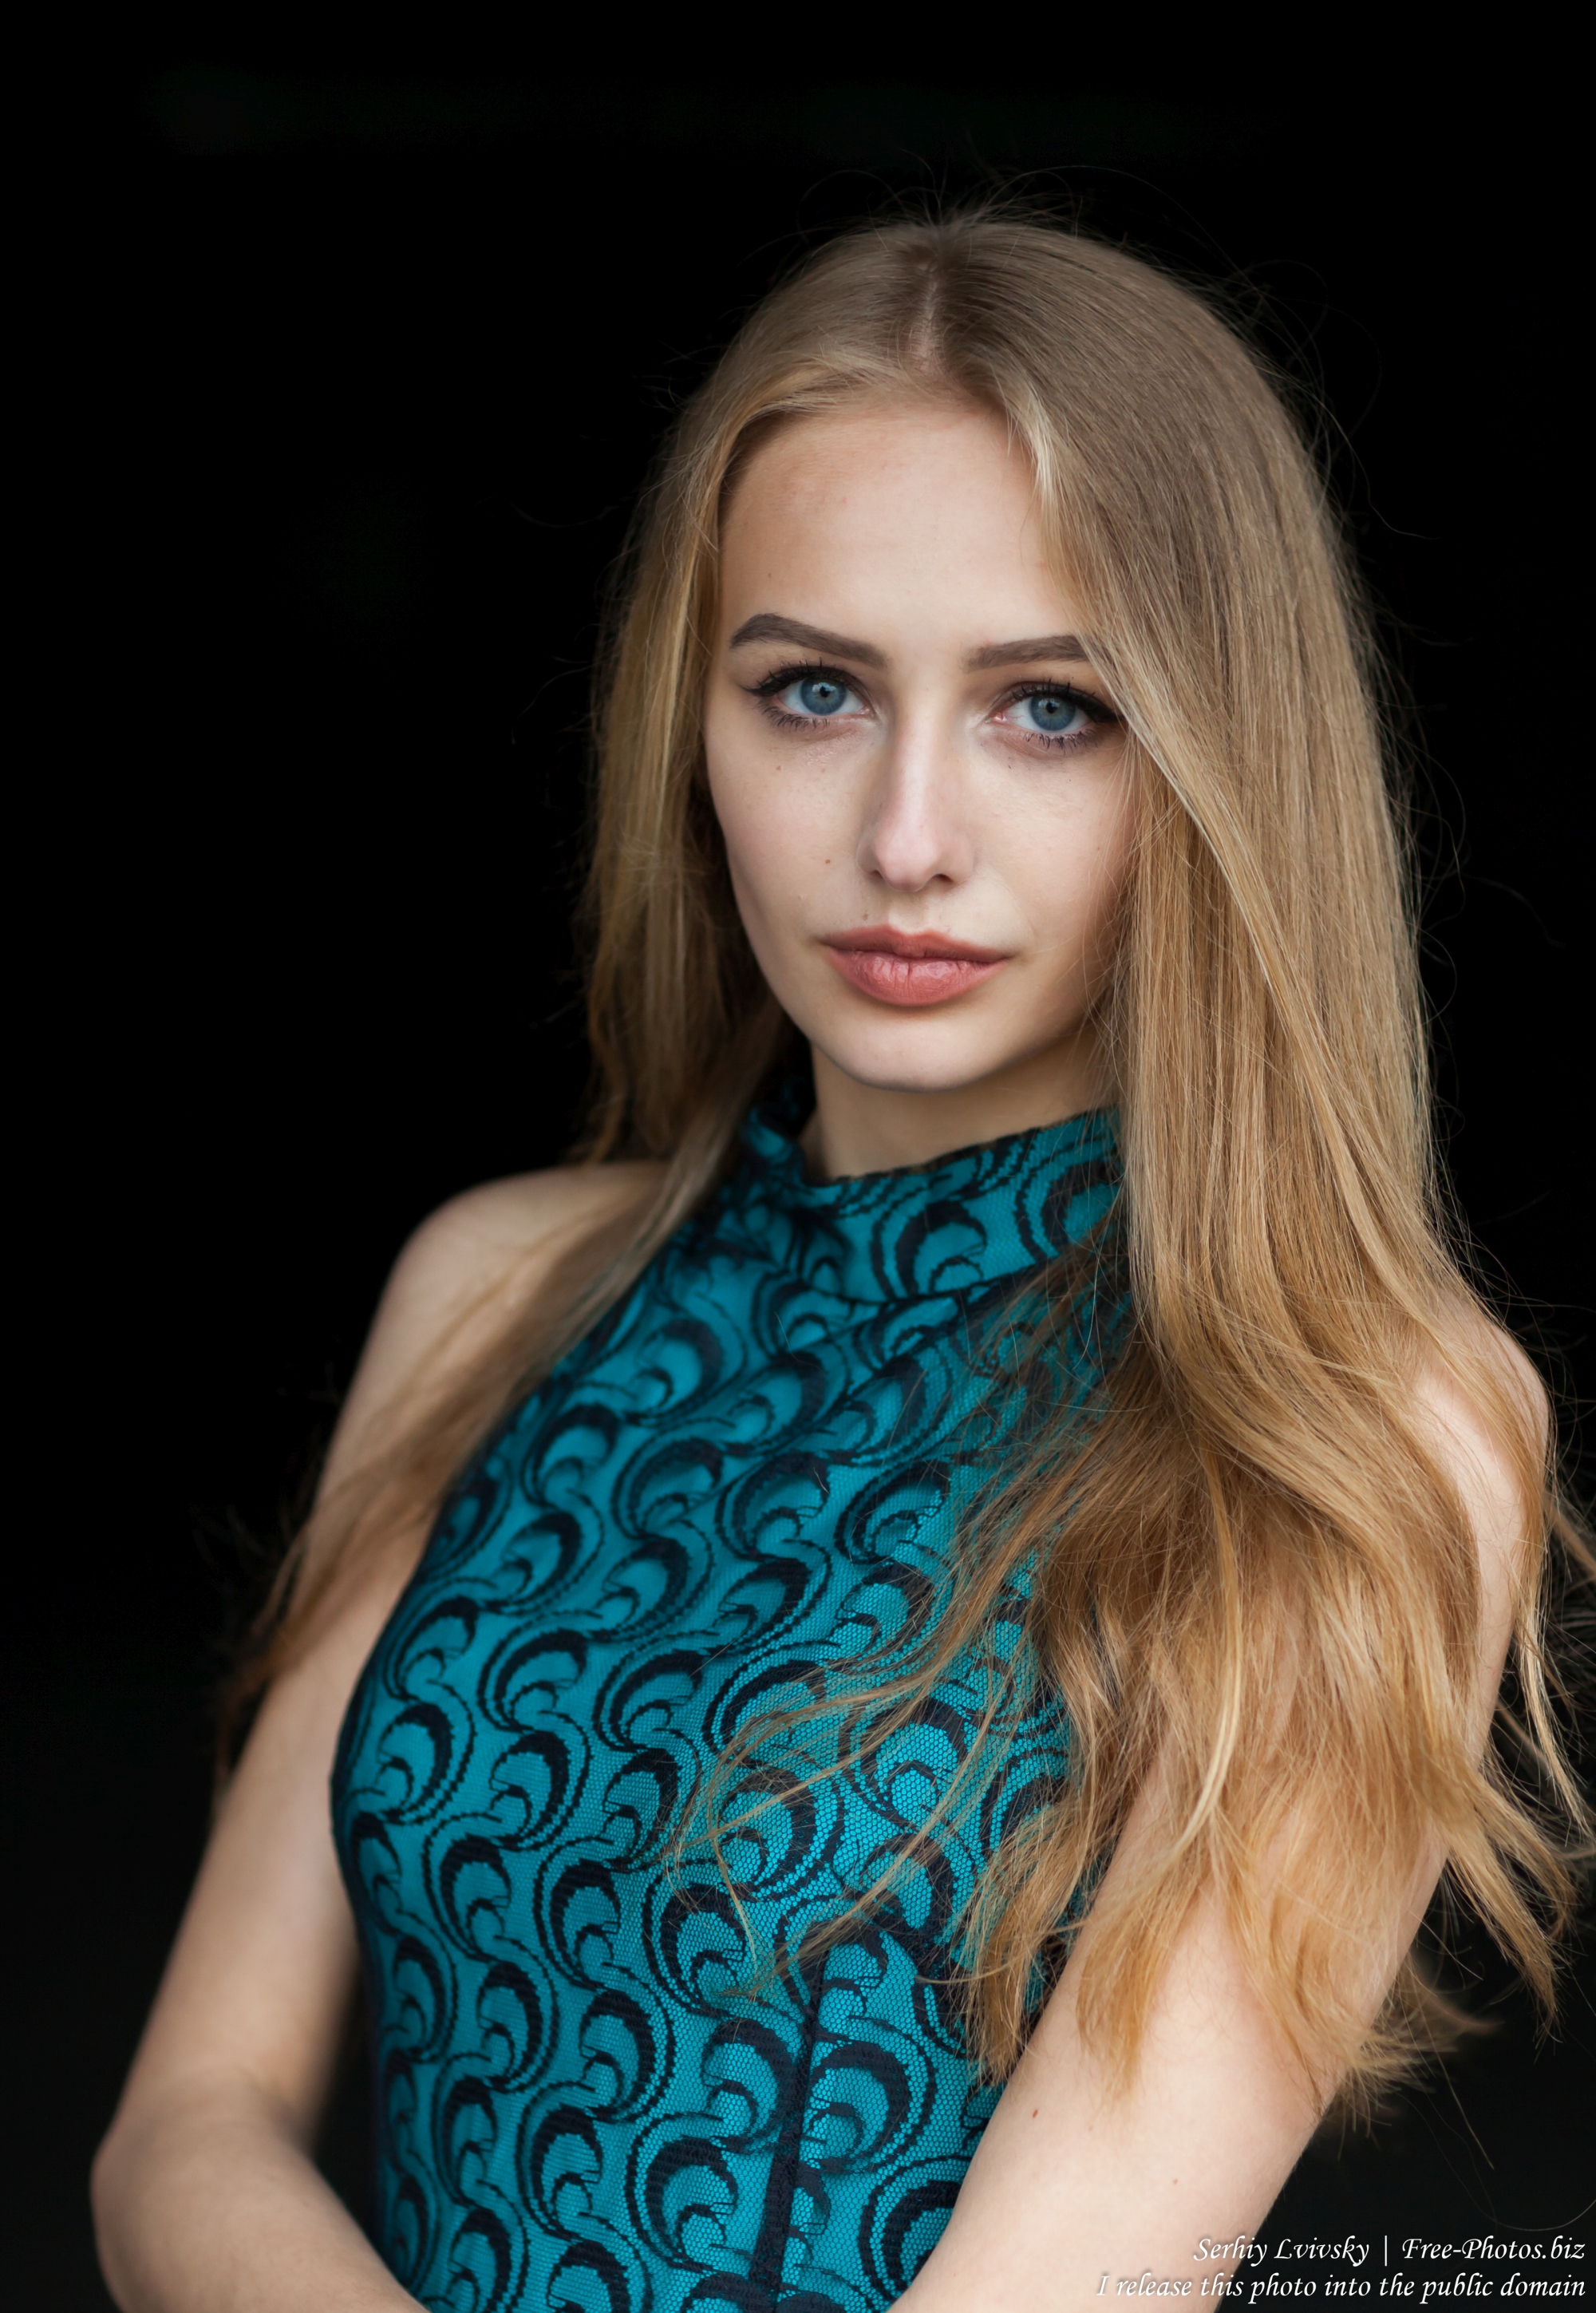 lila_a_15-year-old_natural_blonde_girl_photographed_in_may_2017_by_serhiy_lvivsky_22